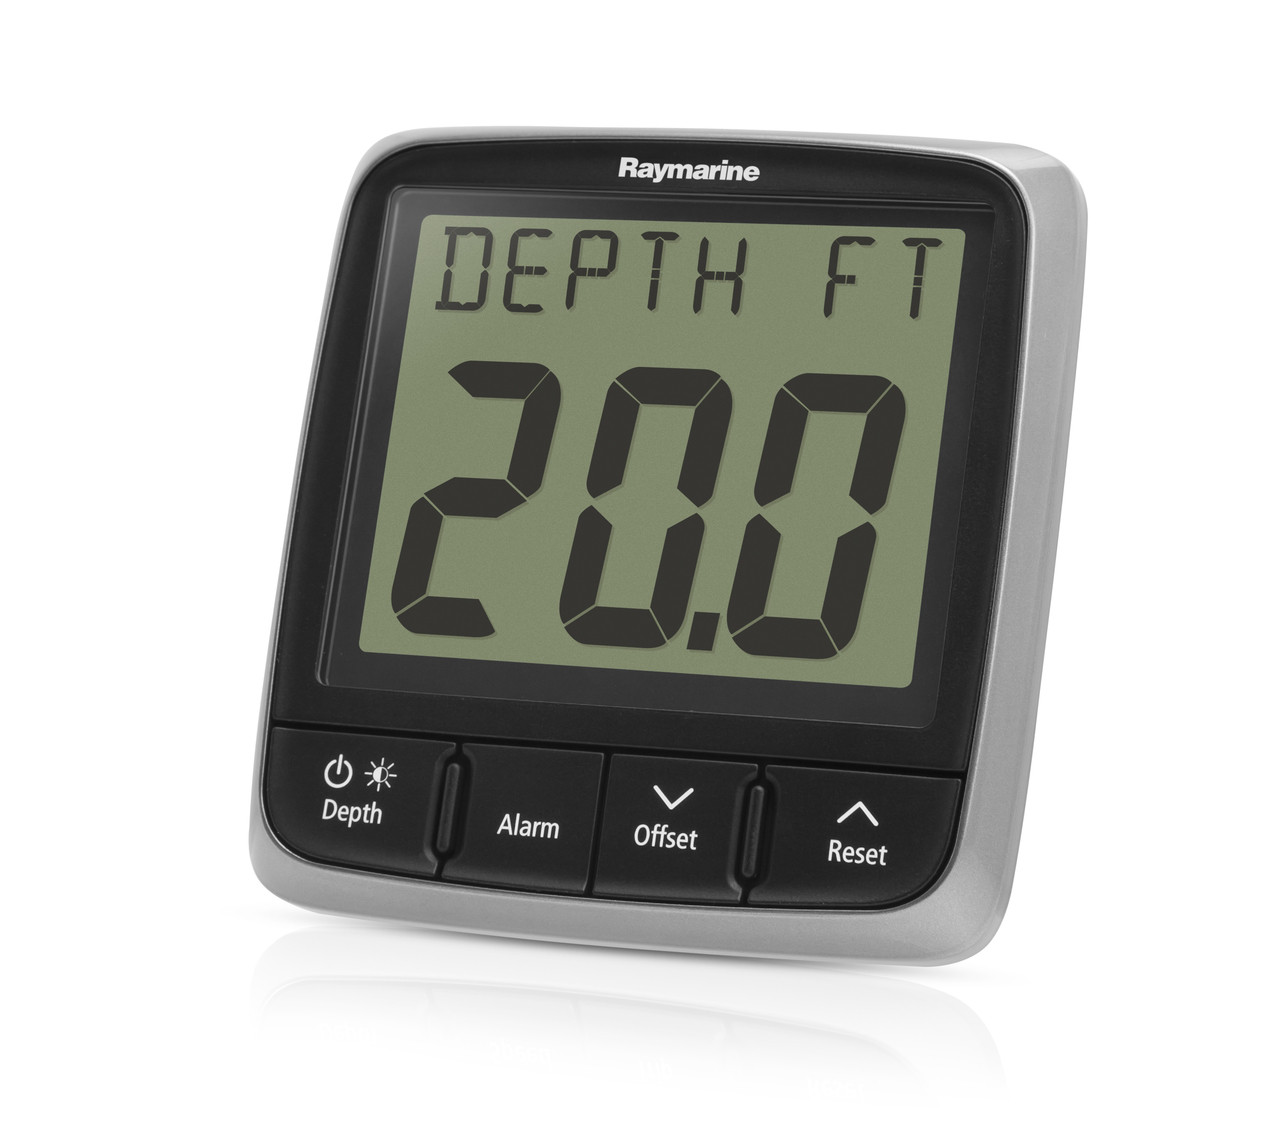 Raymarine i50 Depth Instrument Display Right View